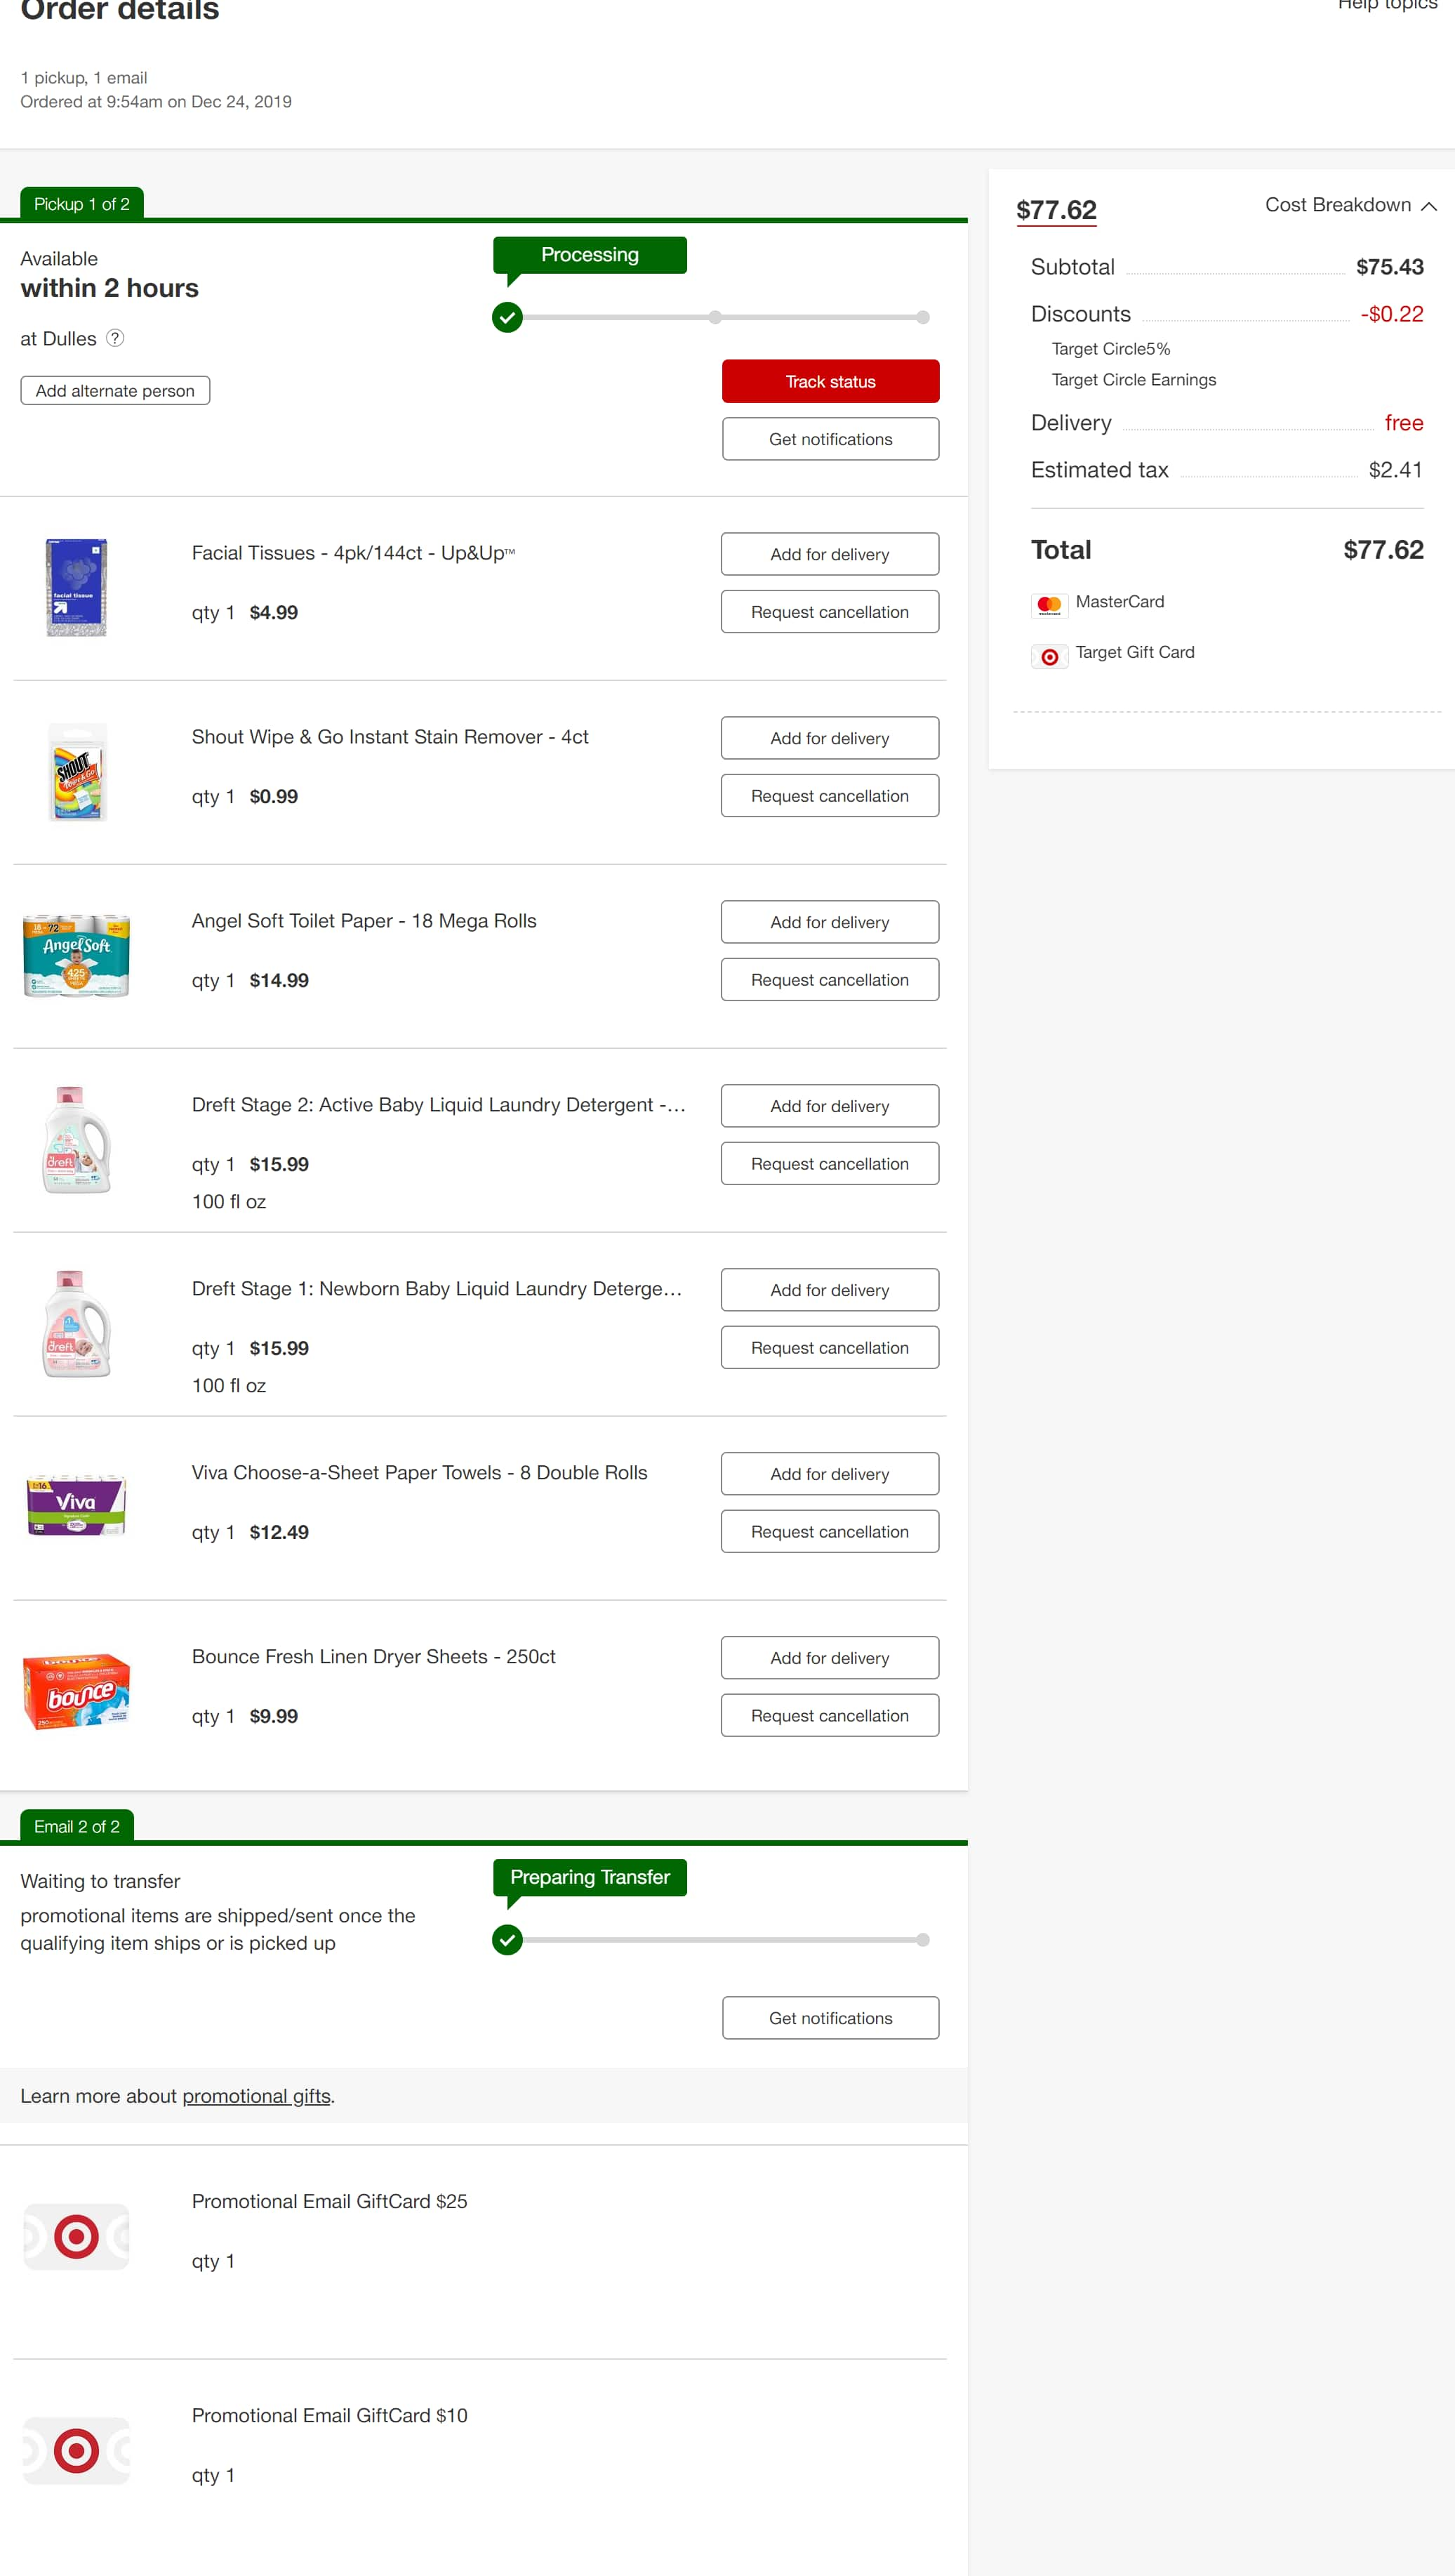 Target Stacked Multiple Gift Card Offer on Household Cleaning Supplies (?) YMMV $75